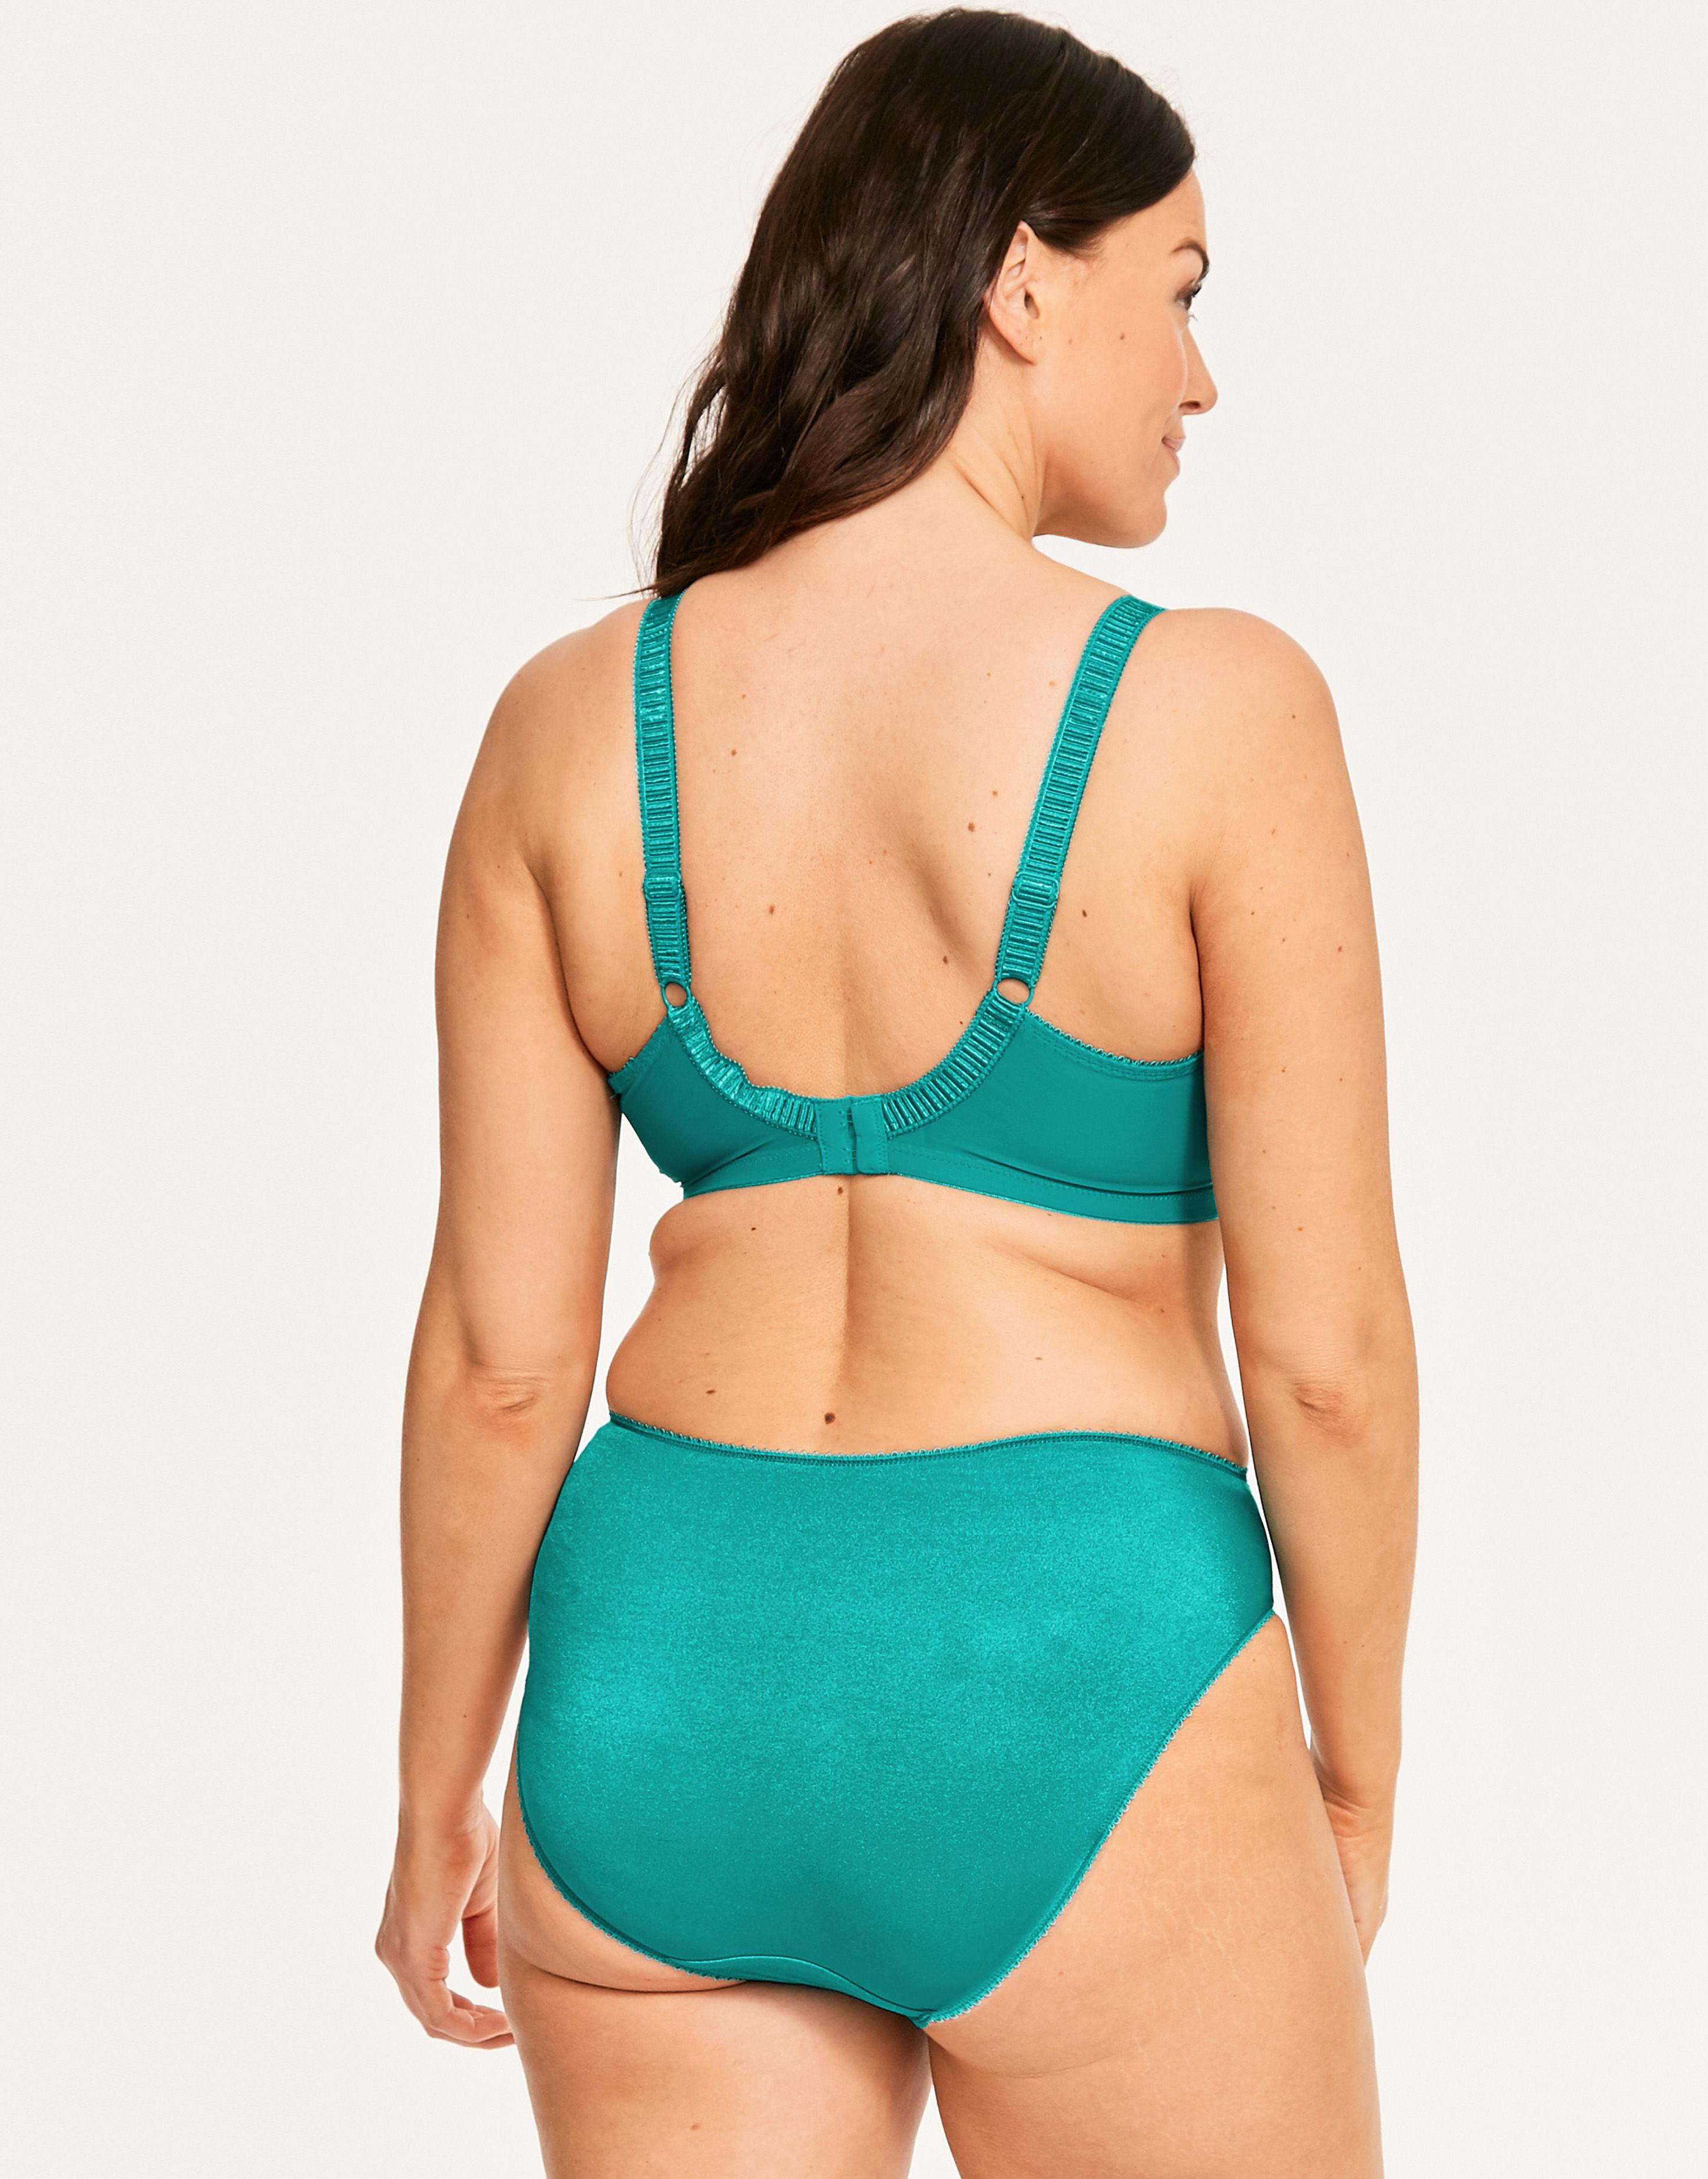 3c403ac3f229c Elomi Cate Underwired Full Cup Banded Bra in Blue - Lyst